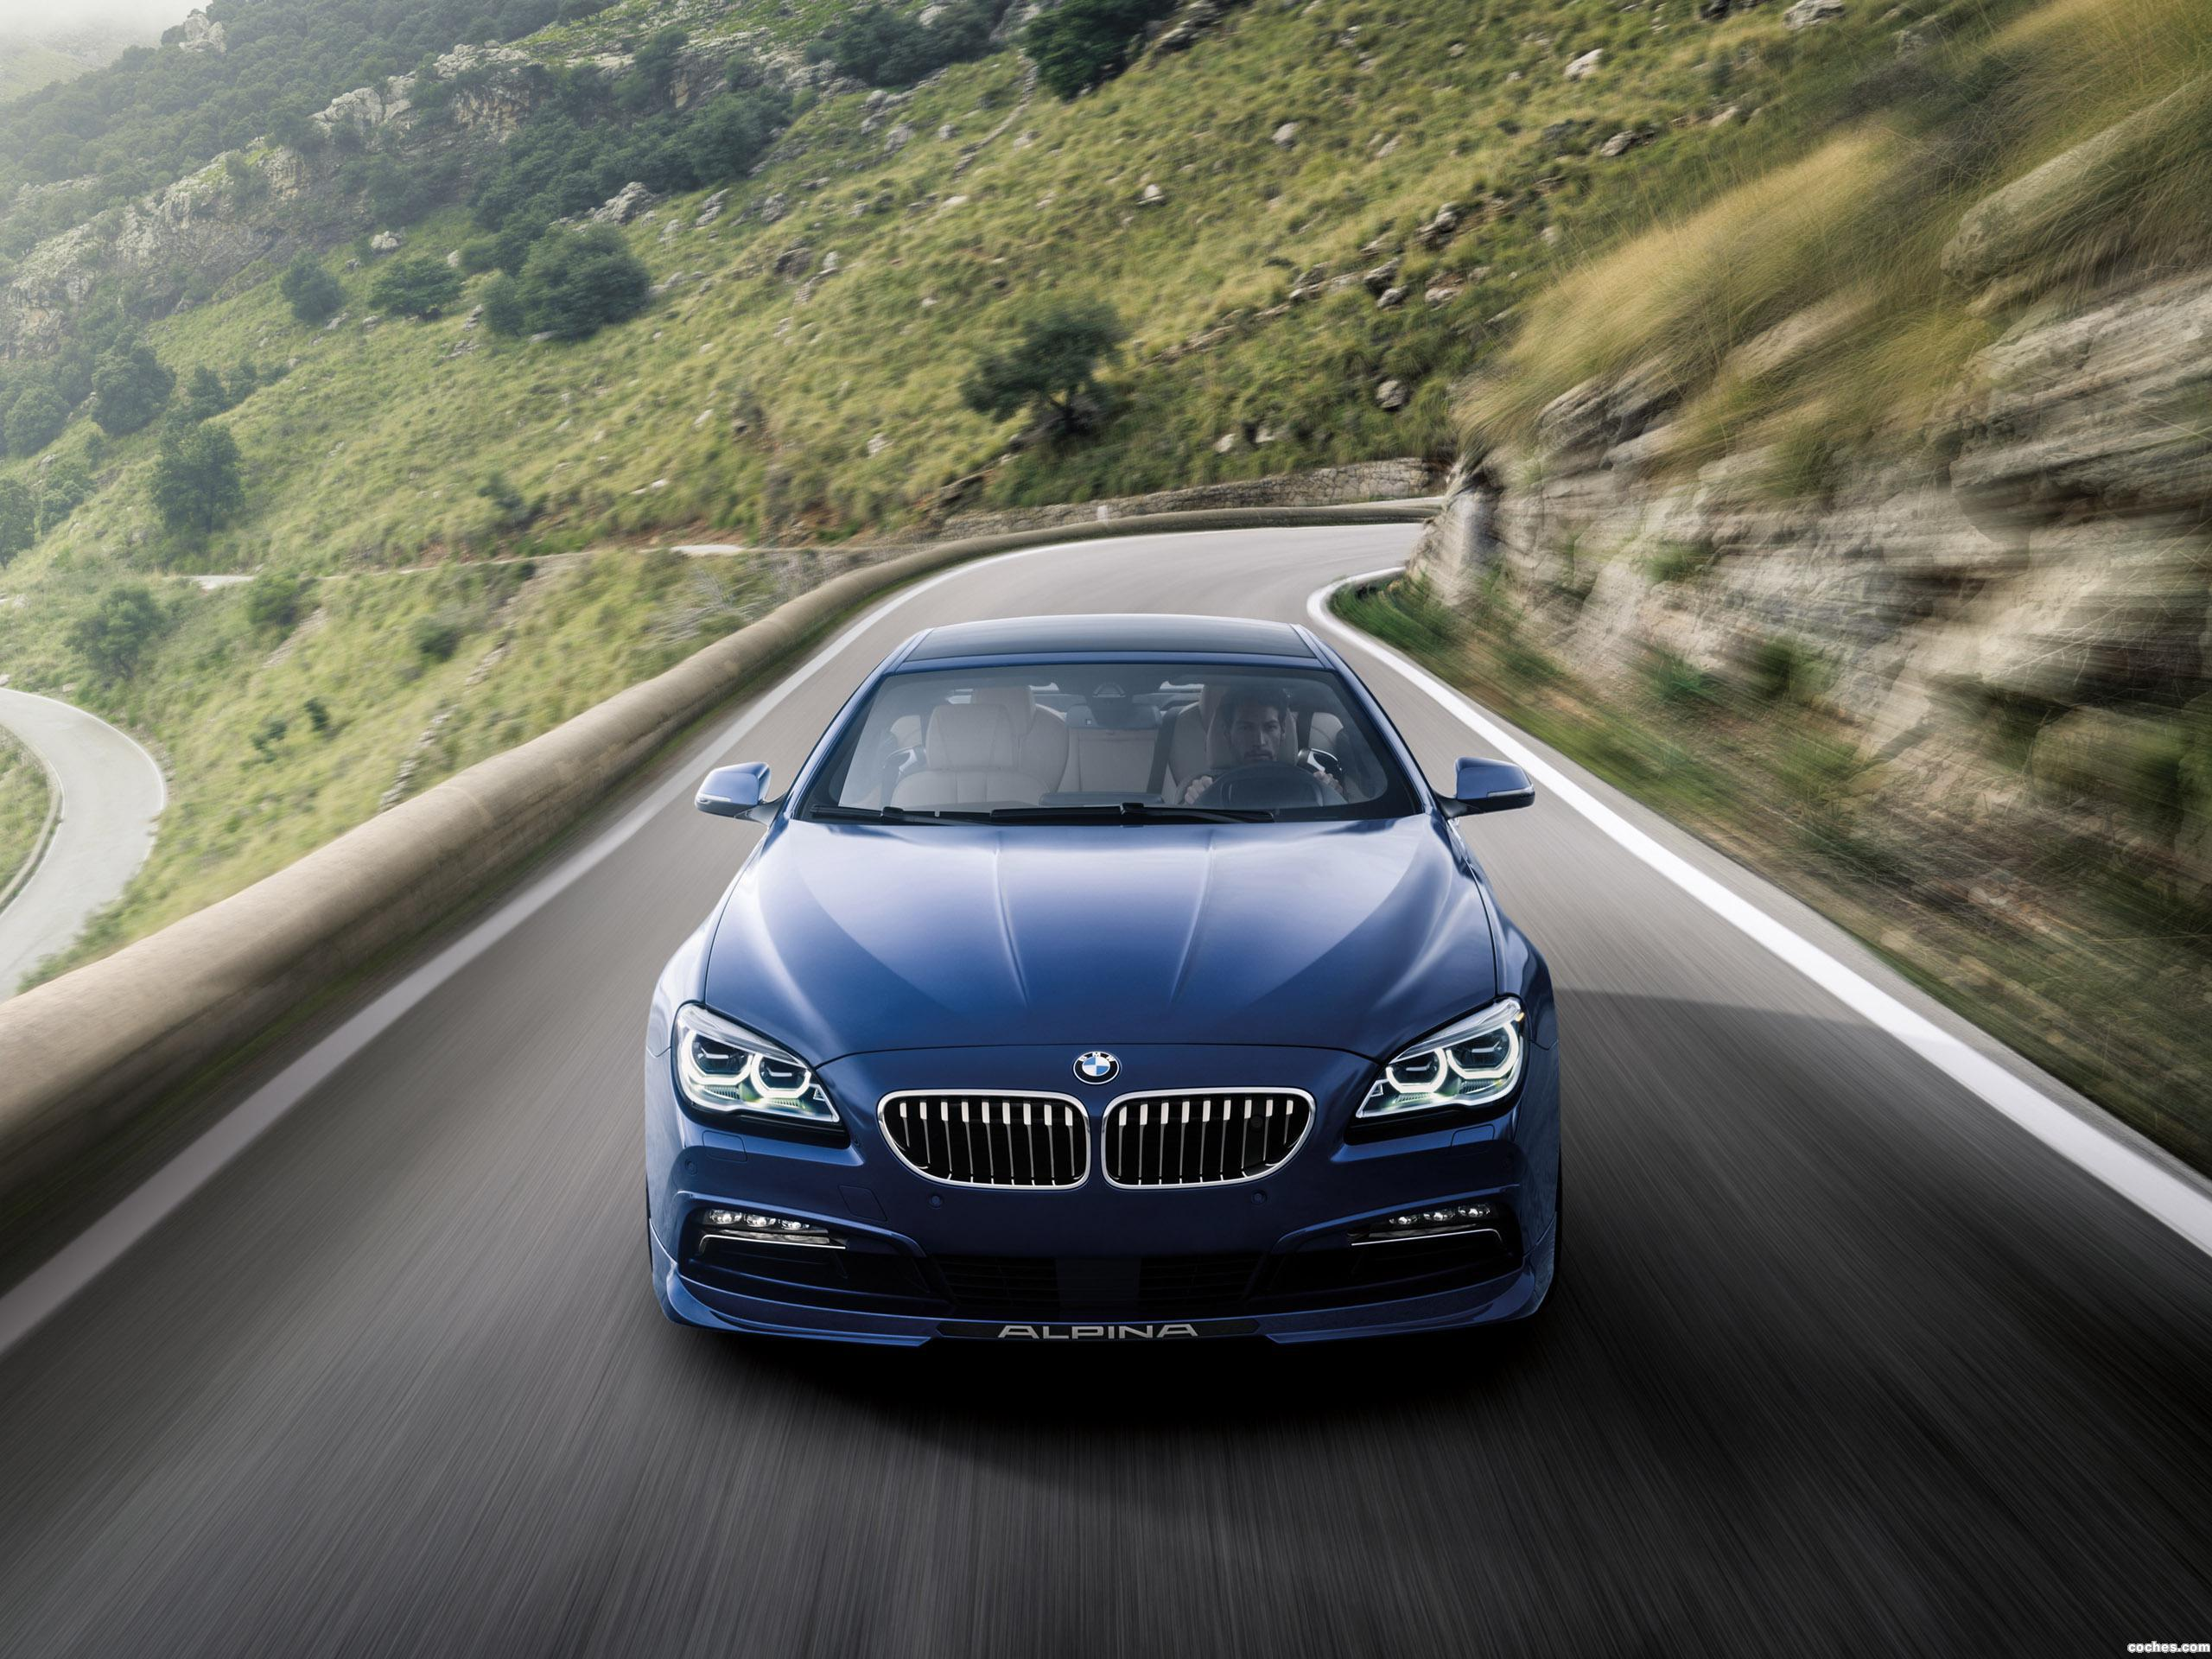 alpina_b6-xdrive-gran-coupe-f06-usa-2015_r6.jpg